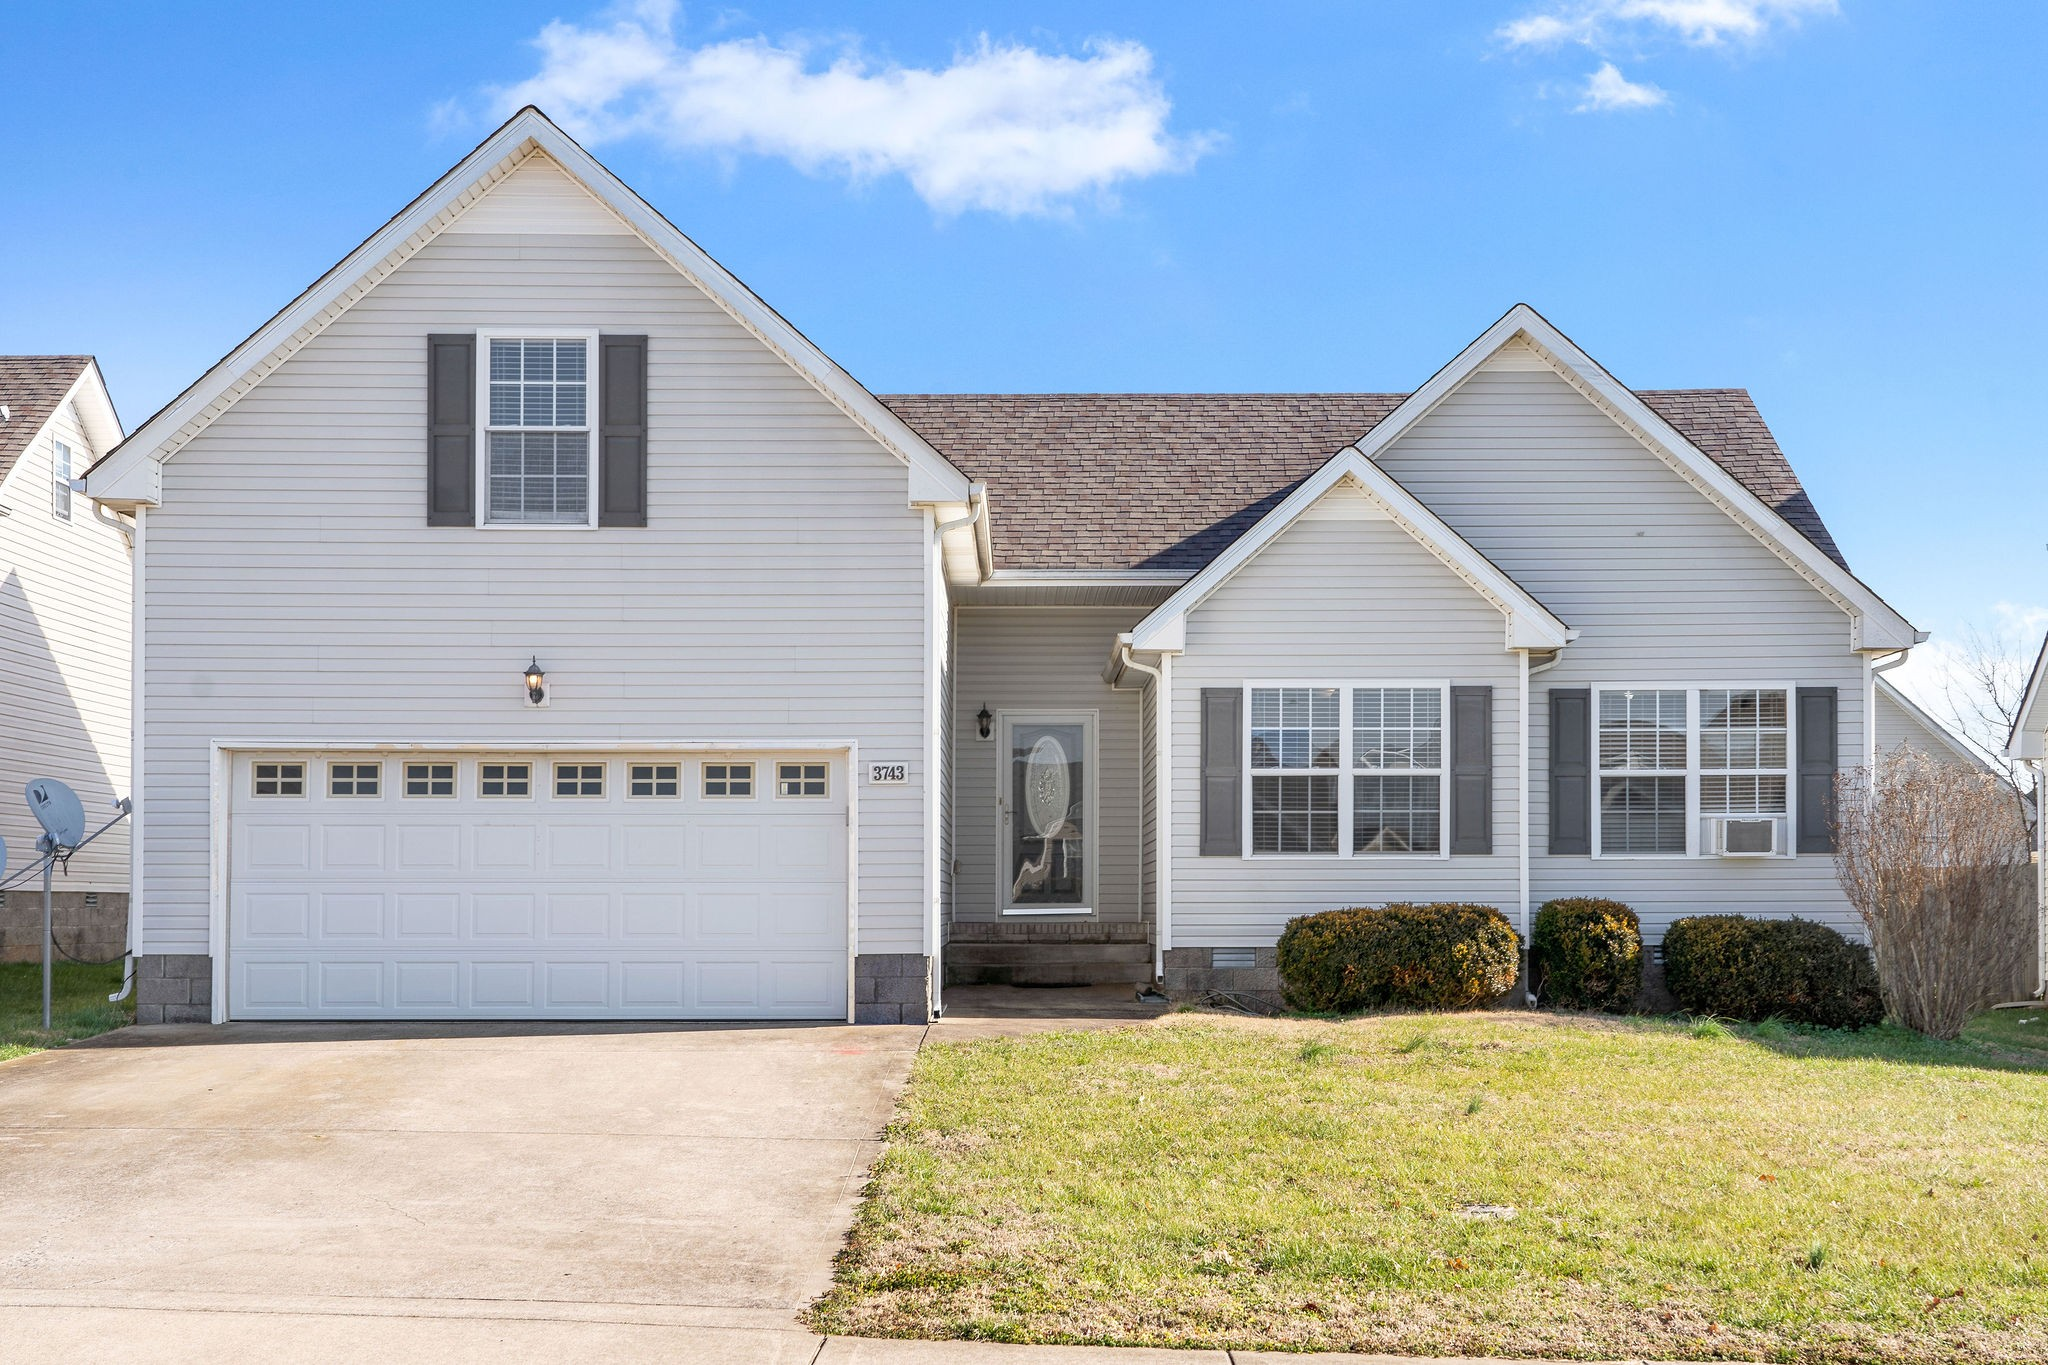 3743 Cindy Jo Dr N Property Photo - Clarksville, TN real estate listing